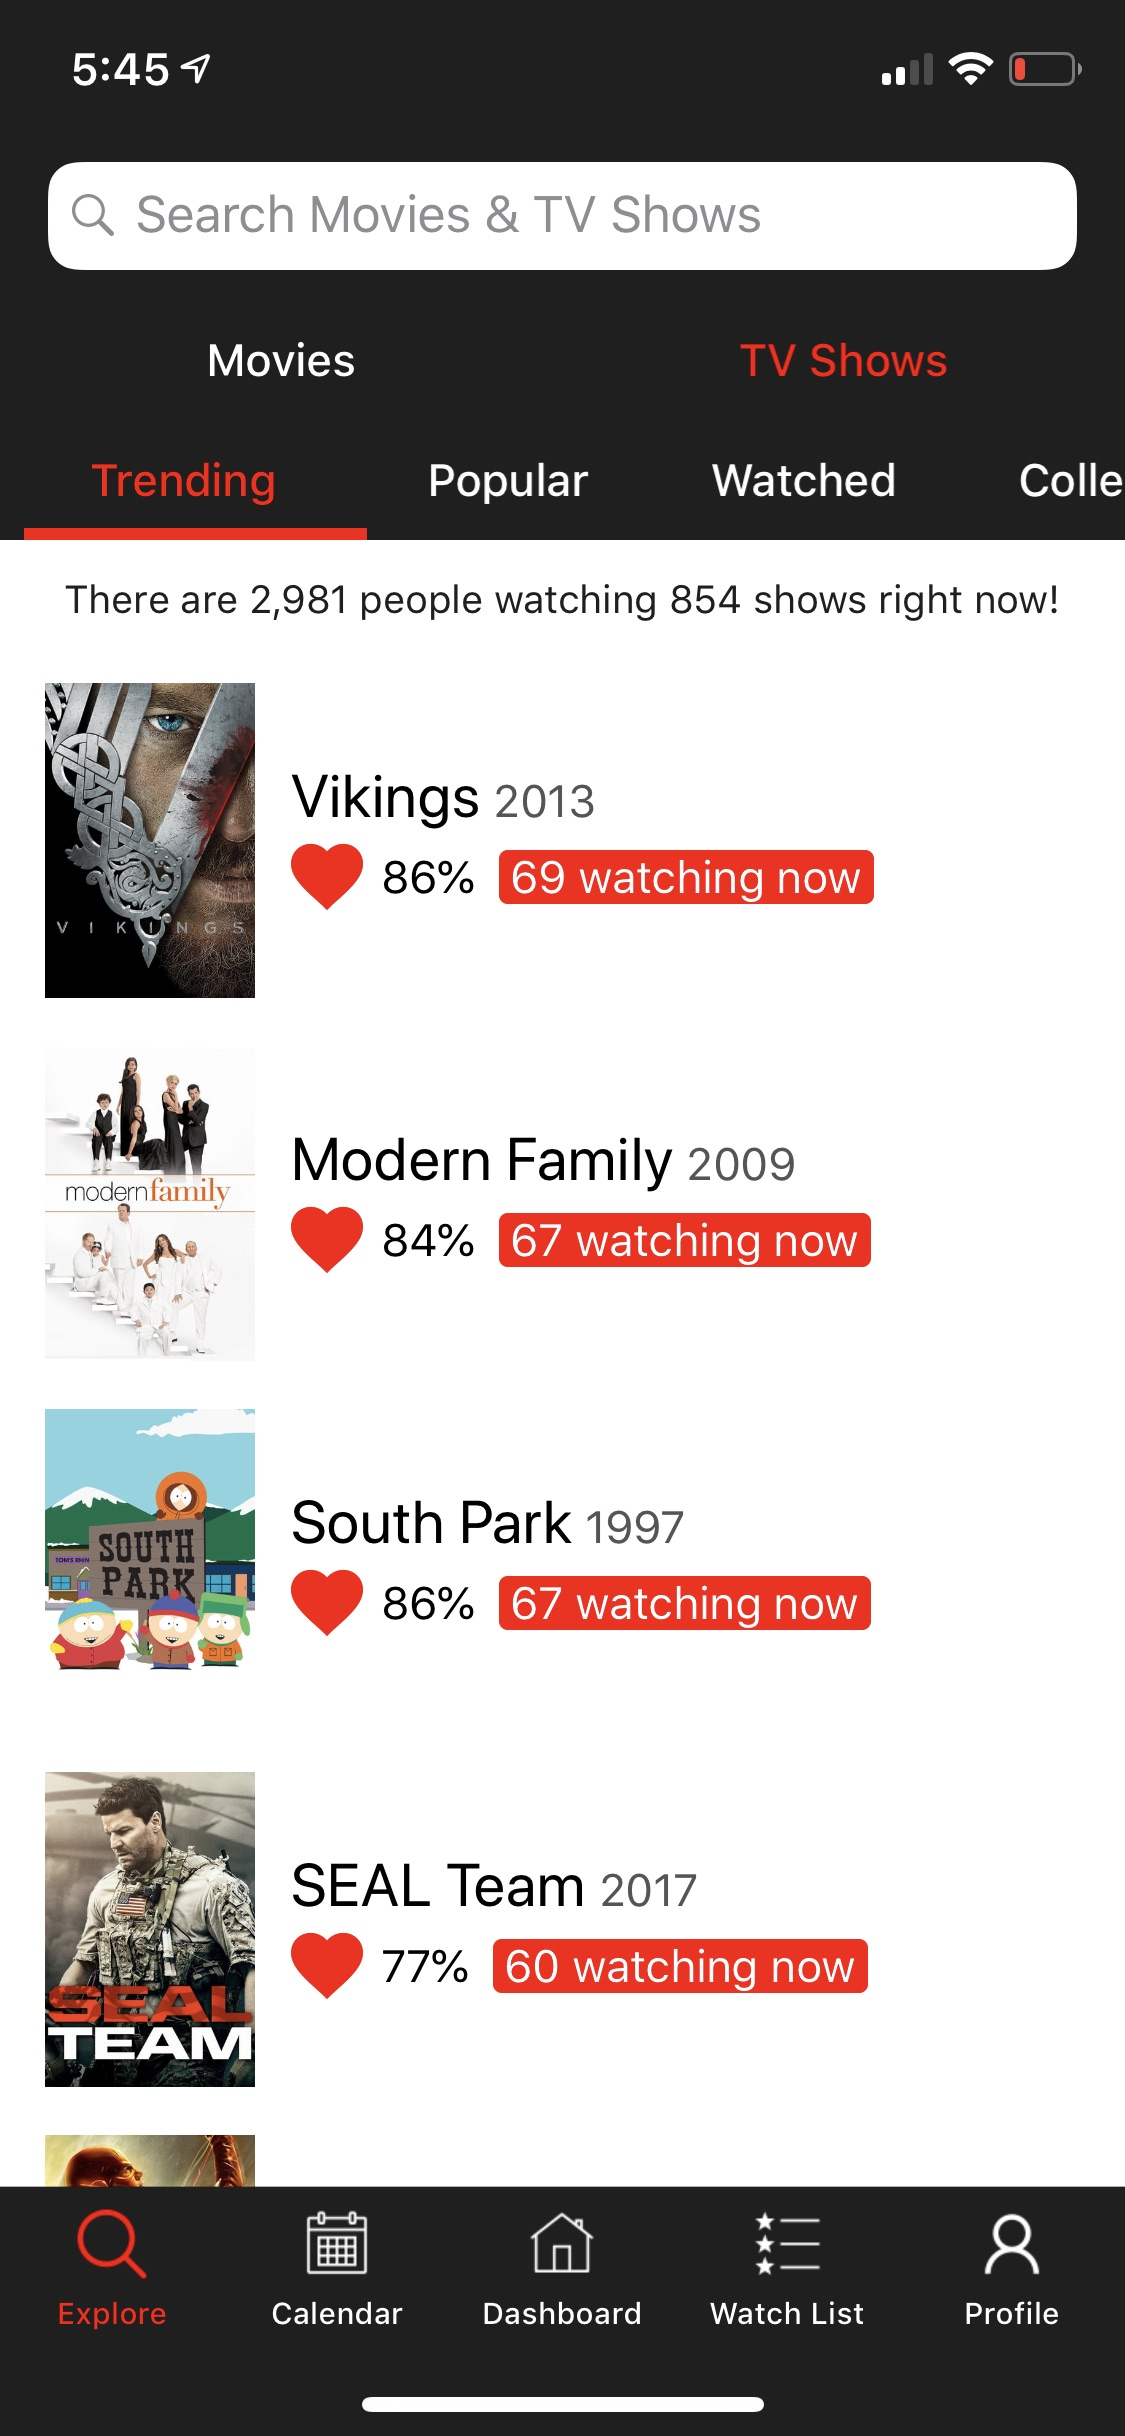 The Explore tab has six categories to sort movies and TV shows in.